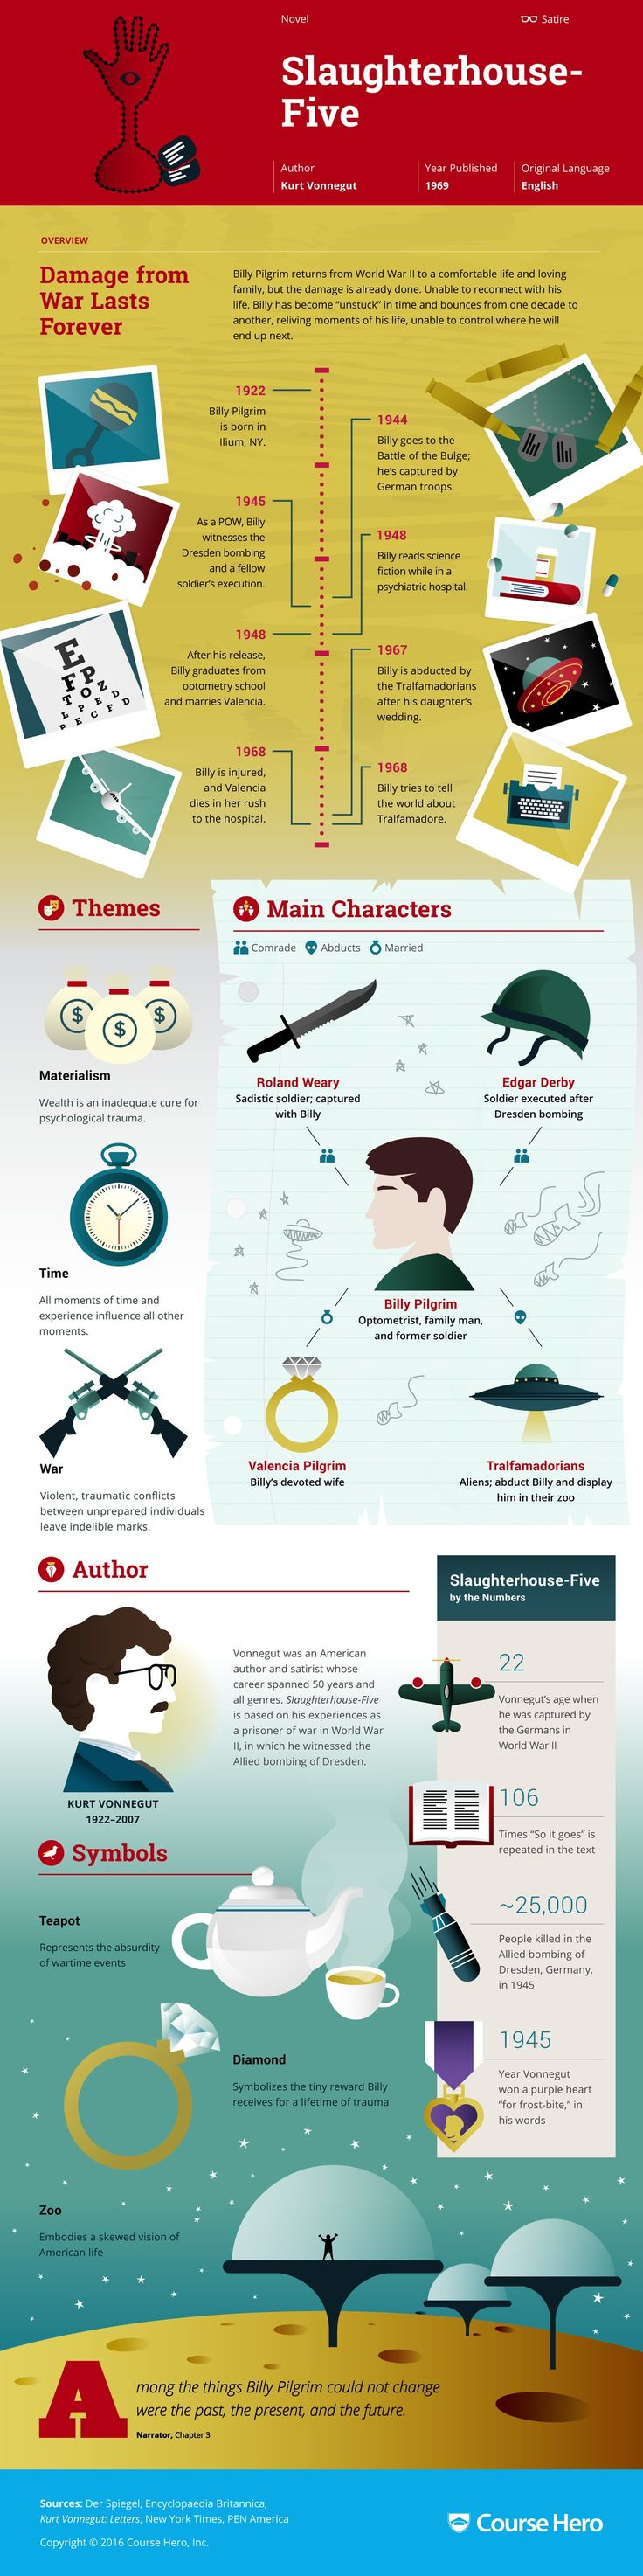 Slaughterhouse Five Infographic | Course Hero